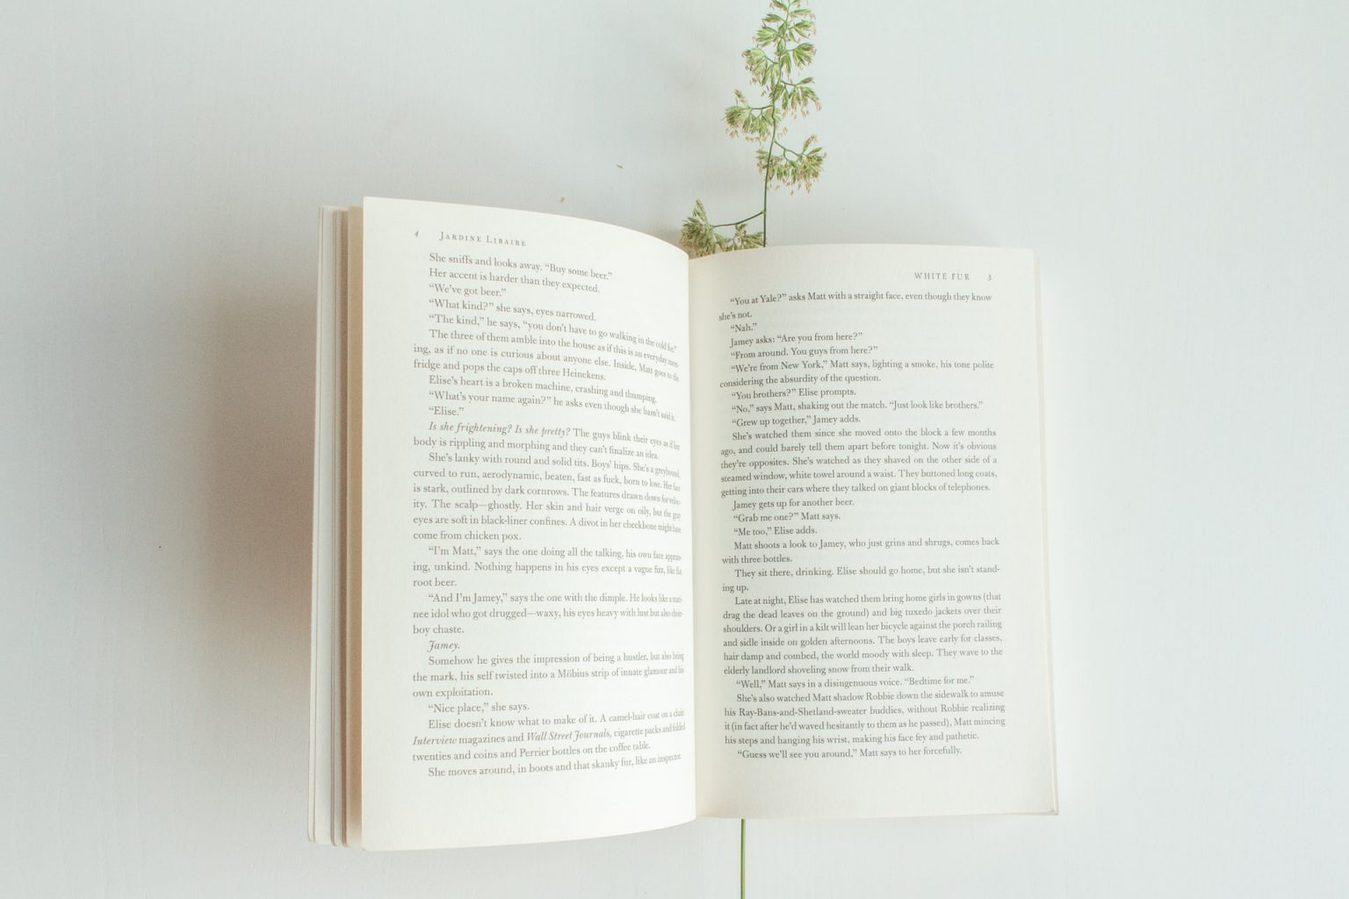 A book open on a white table